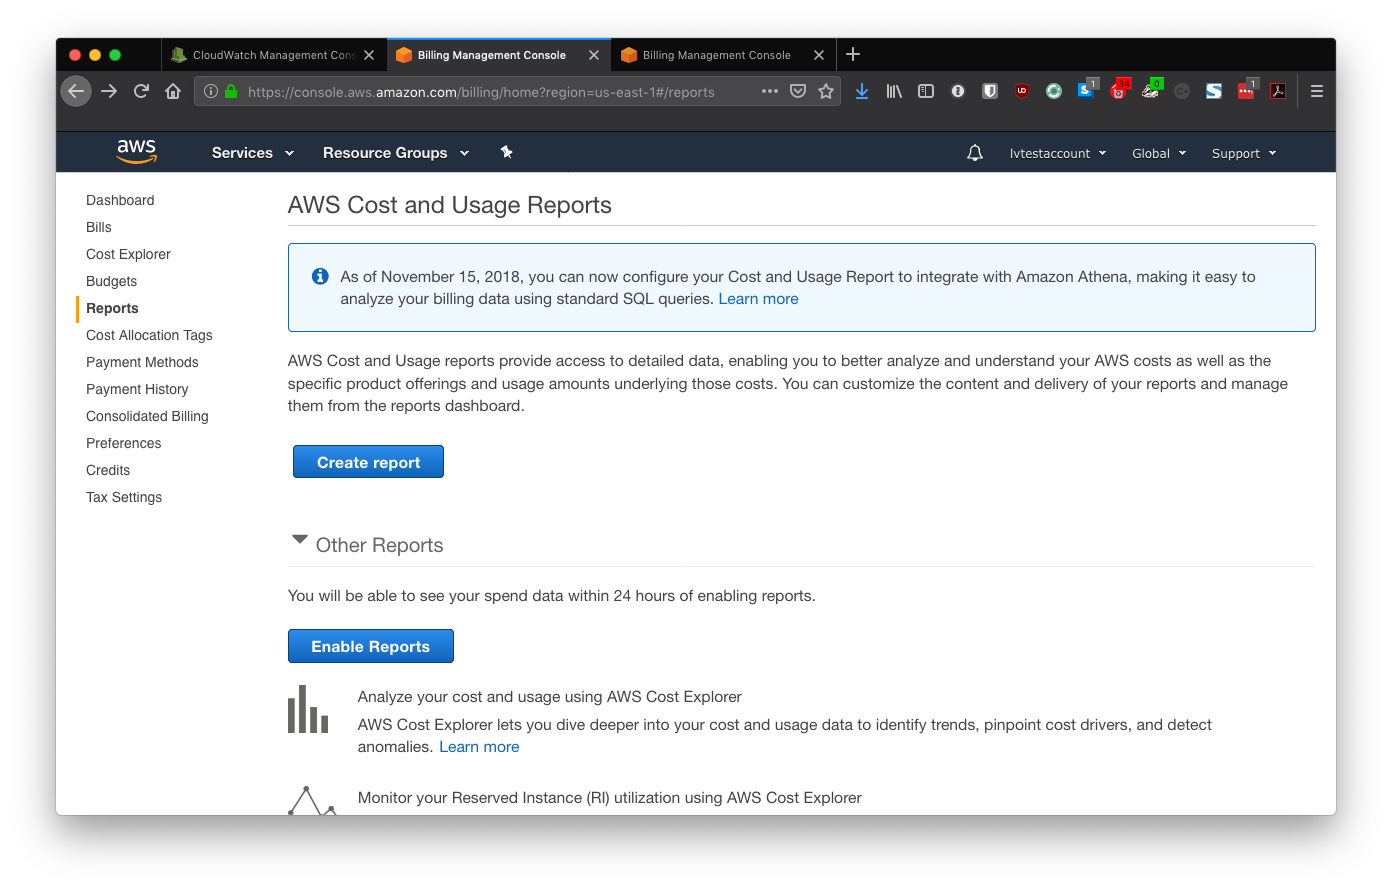 AWS Cost and Usage Reports page